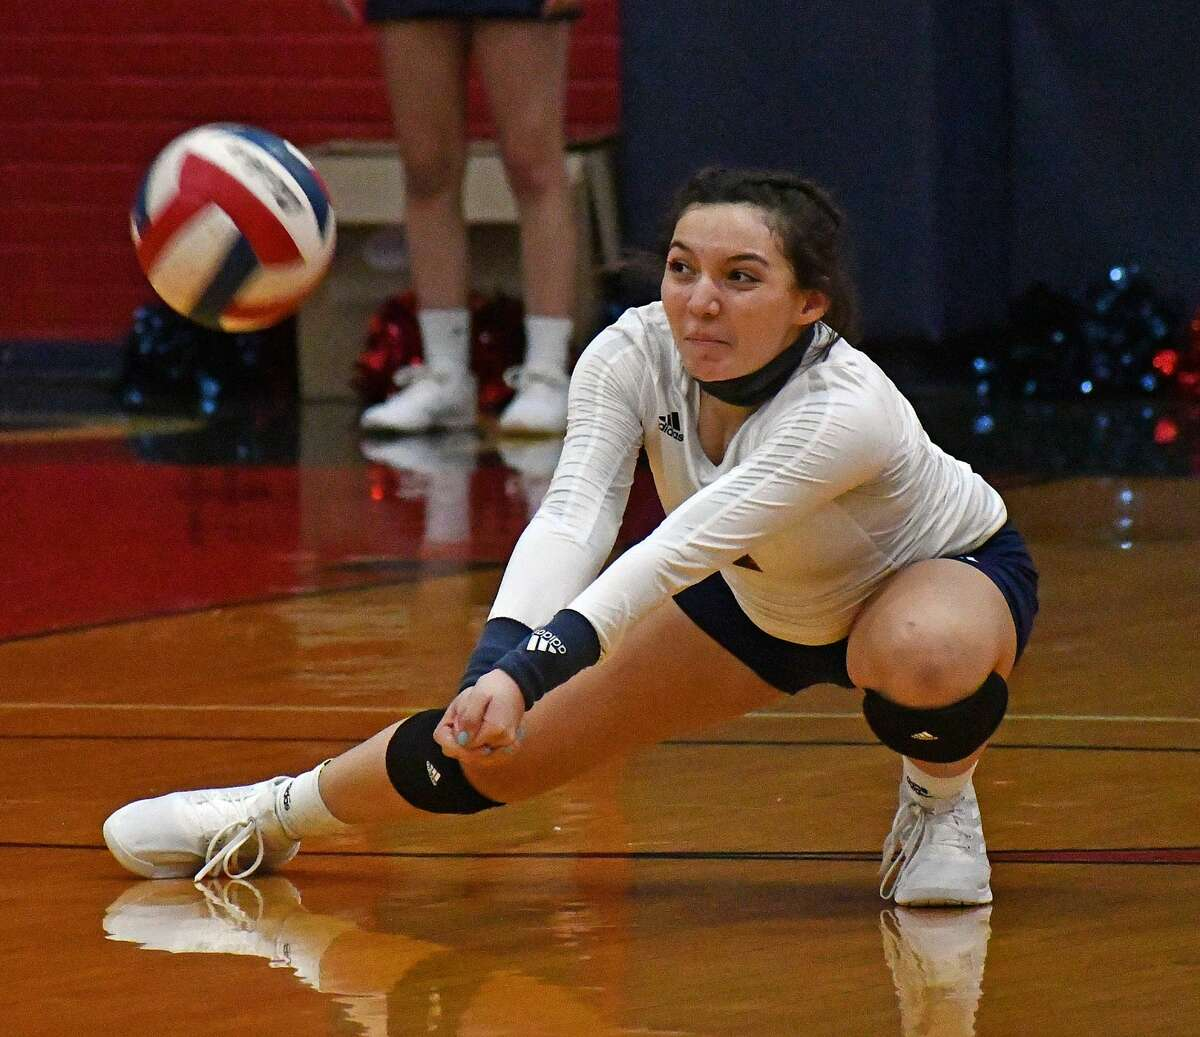 Plainview went 2-0 in a home volleyball triangular on Tuesday, Sept. 29, 2020 in the Dog House at Plainview High School. The Lady Bulldogs won 3-0 against Wichita Falls and defeated Lubbock 3-1.